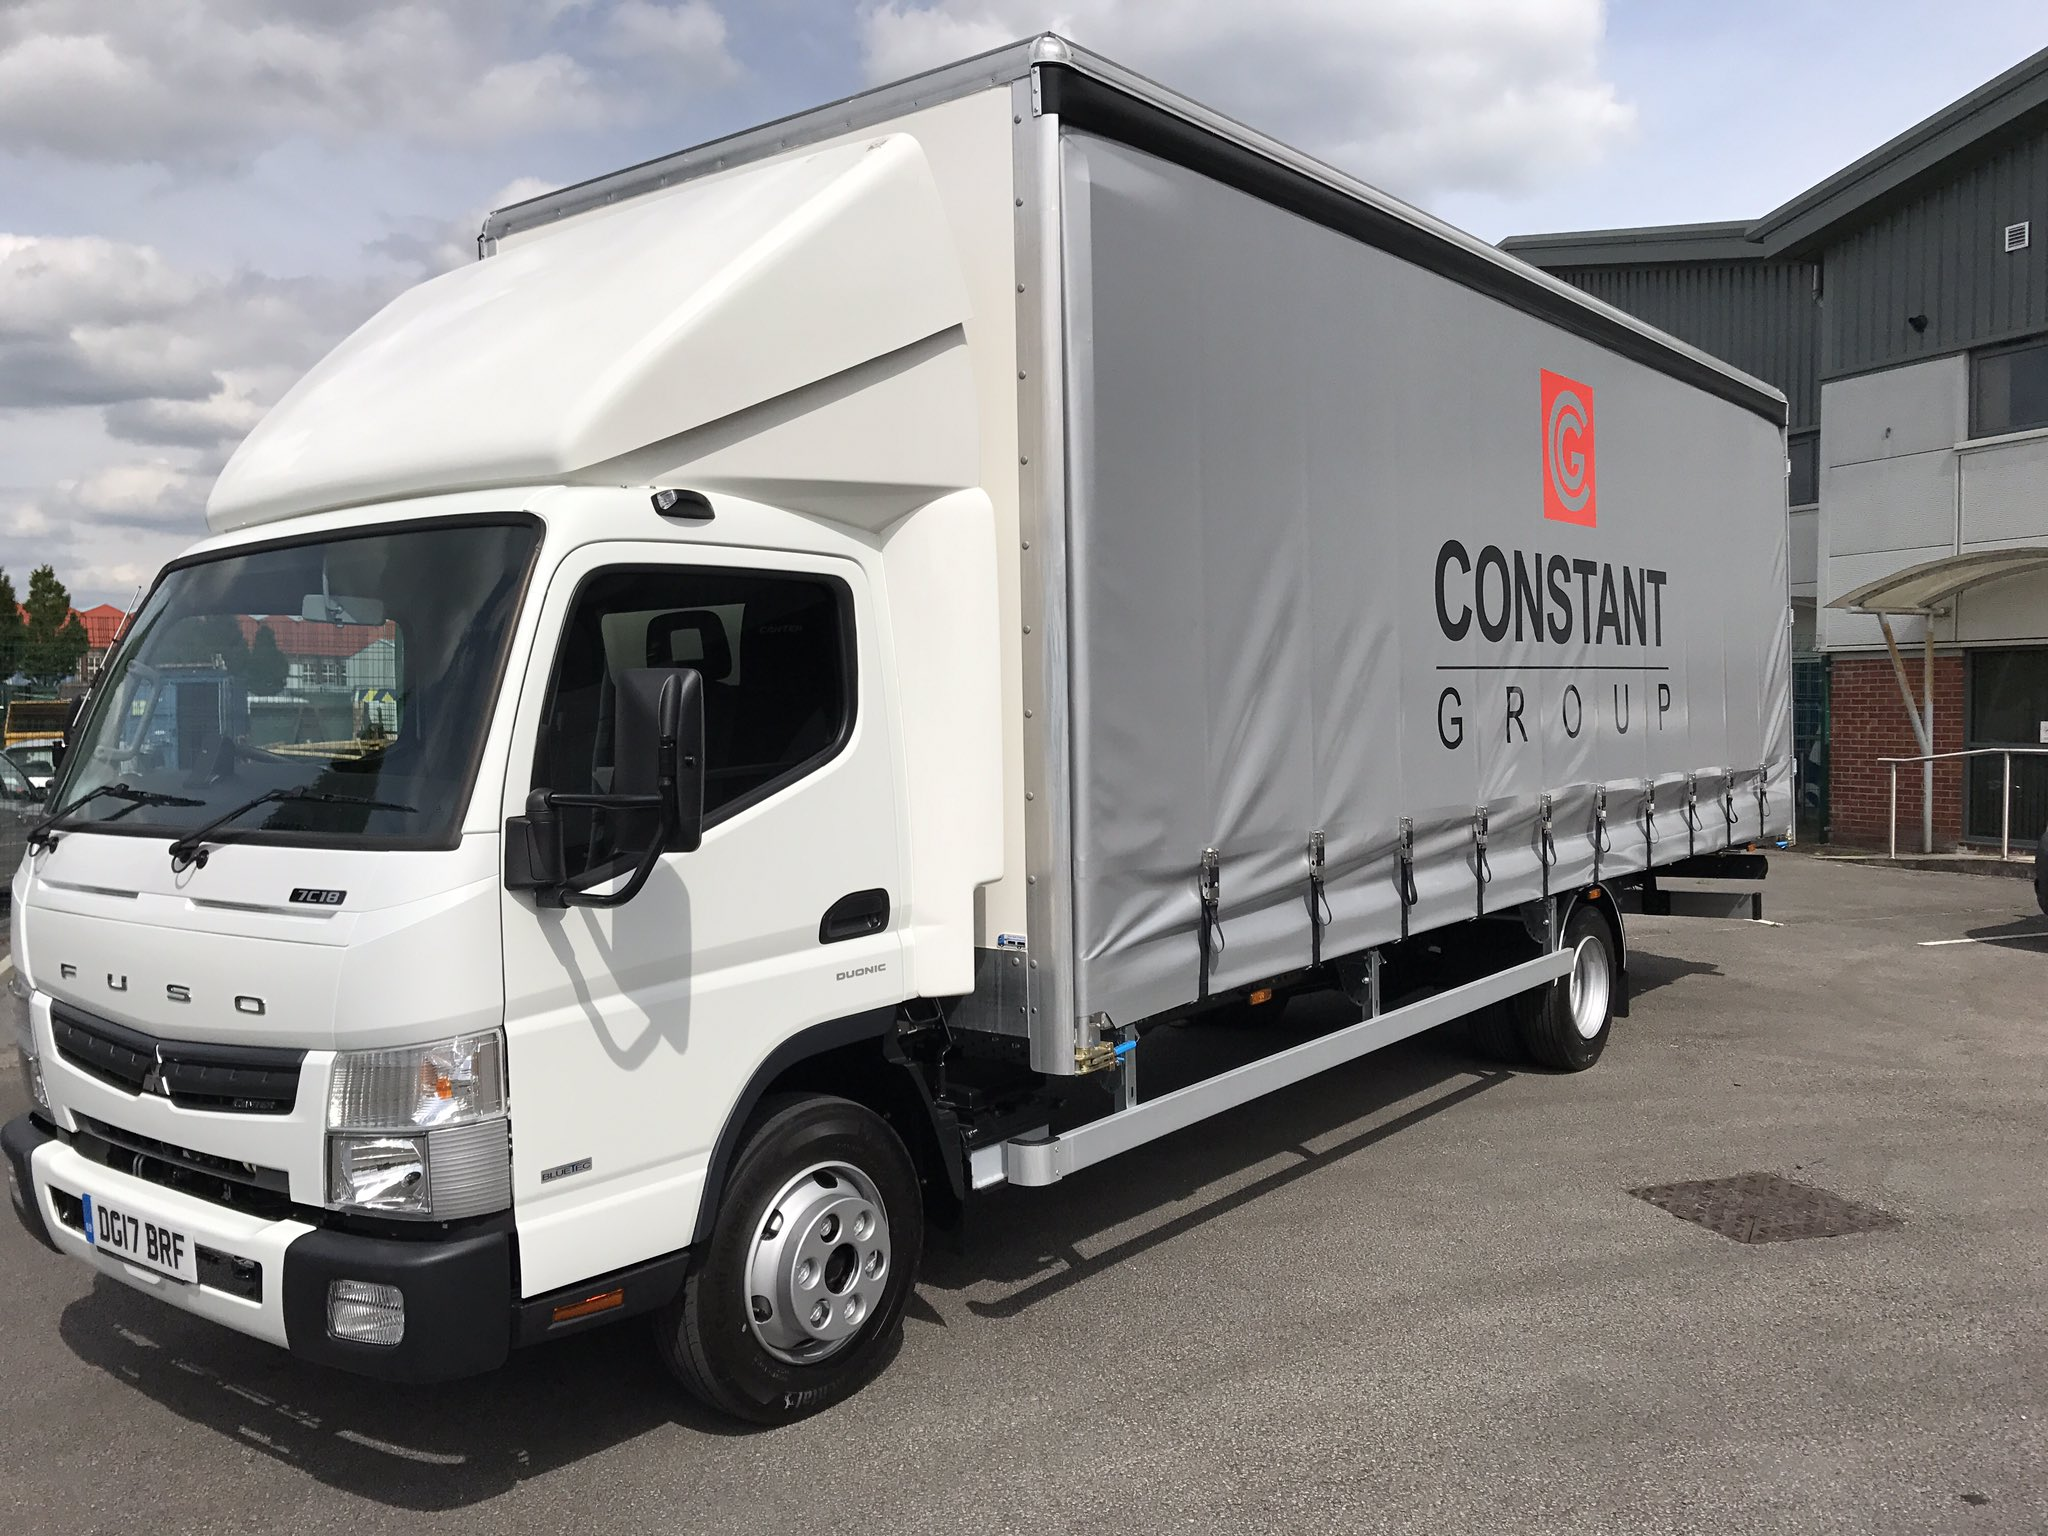 New high-yield 29 foot wagon with a capacity of 4.1 tonnes joins the fleet